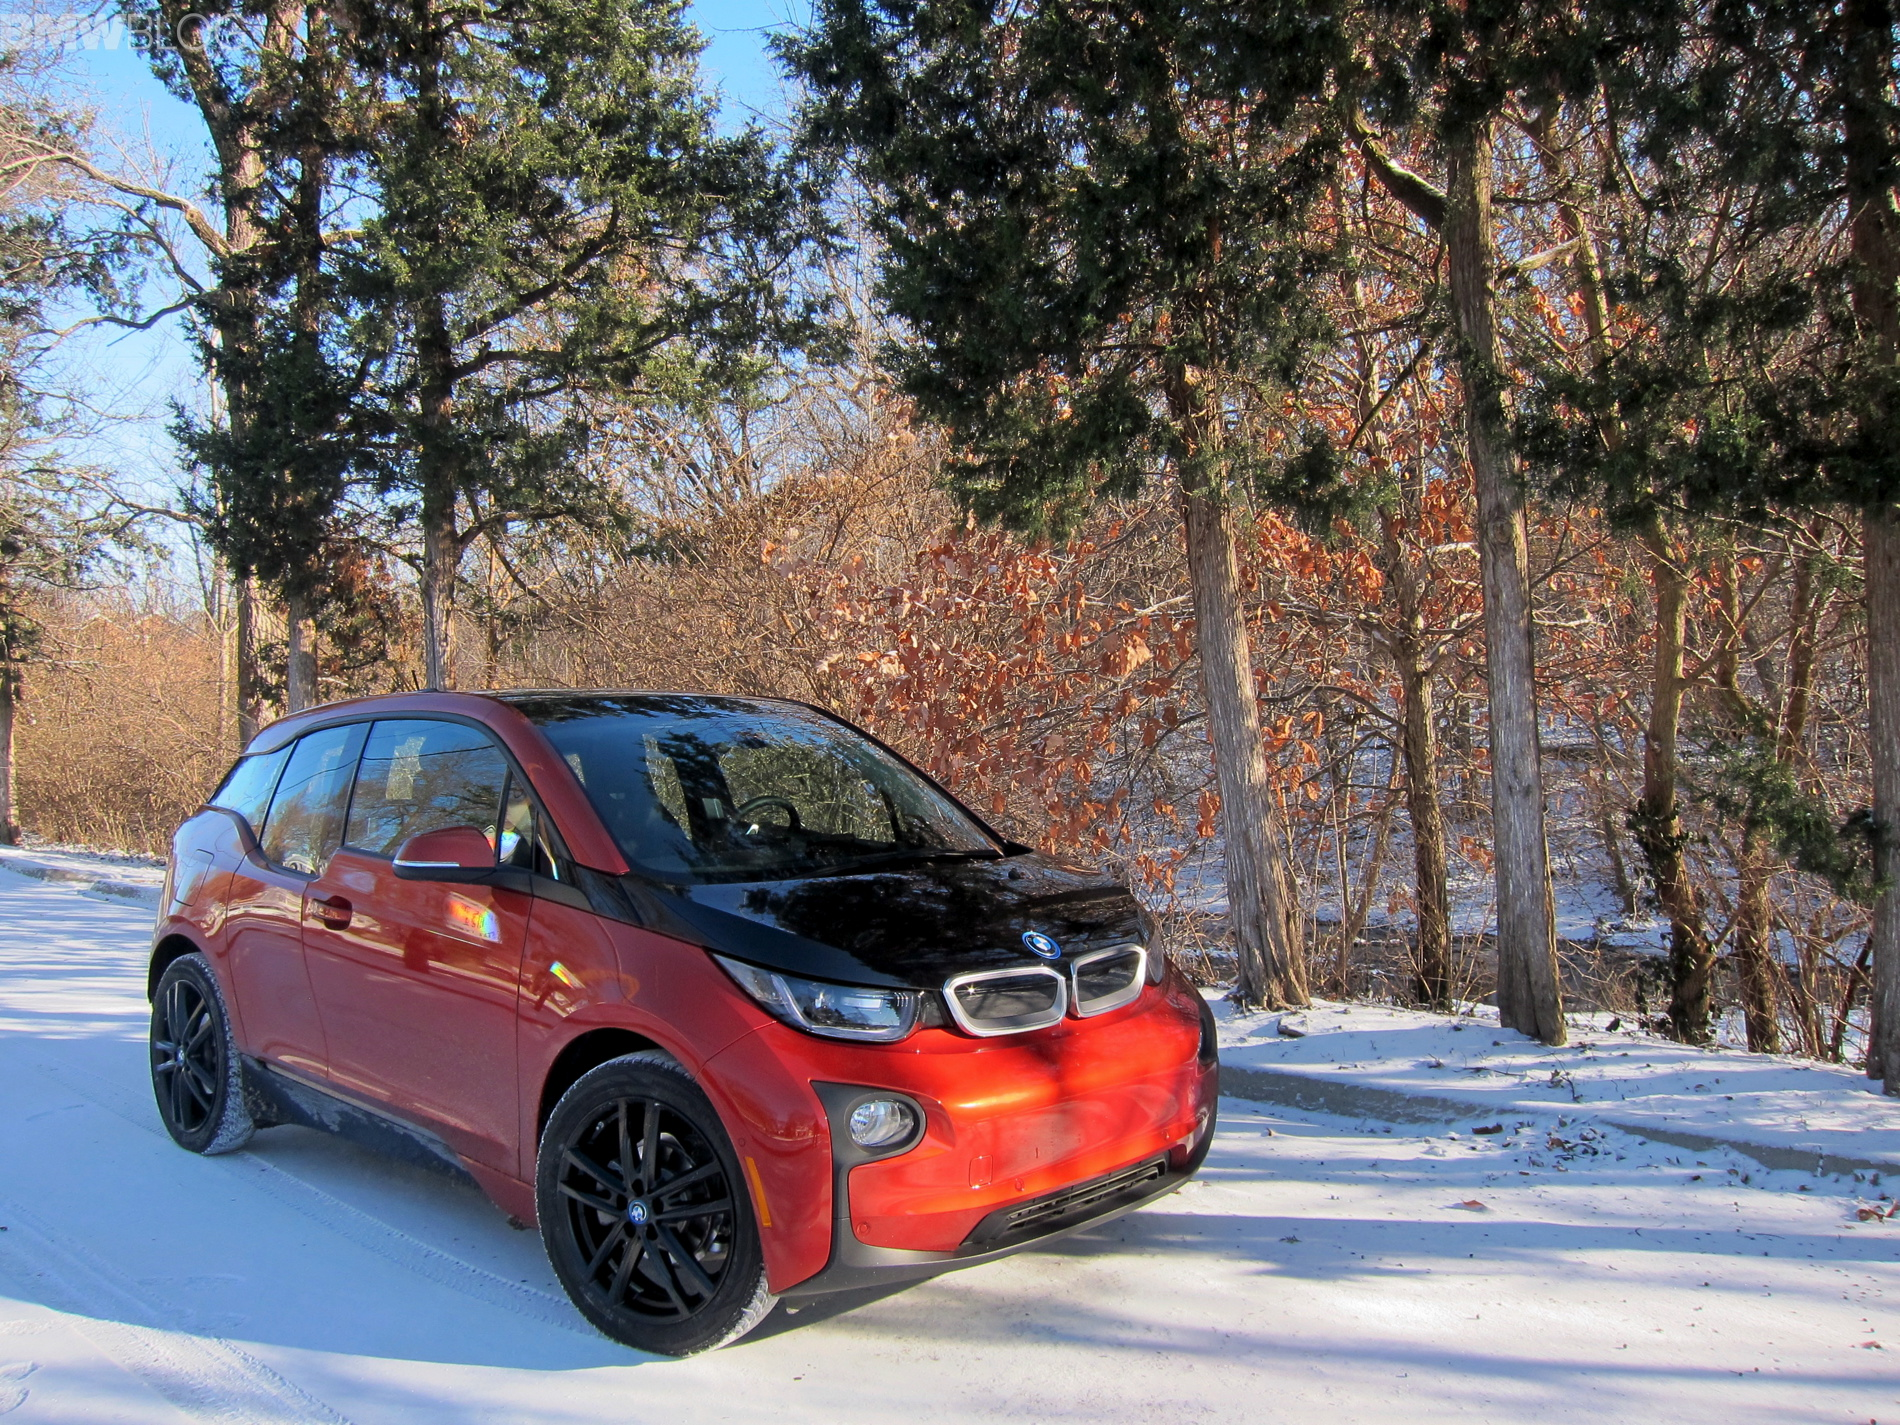 Bmw I3 Winter Tires Review Bridgestone Blizzak Lm 500 Vs Nokian